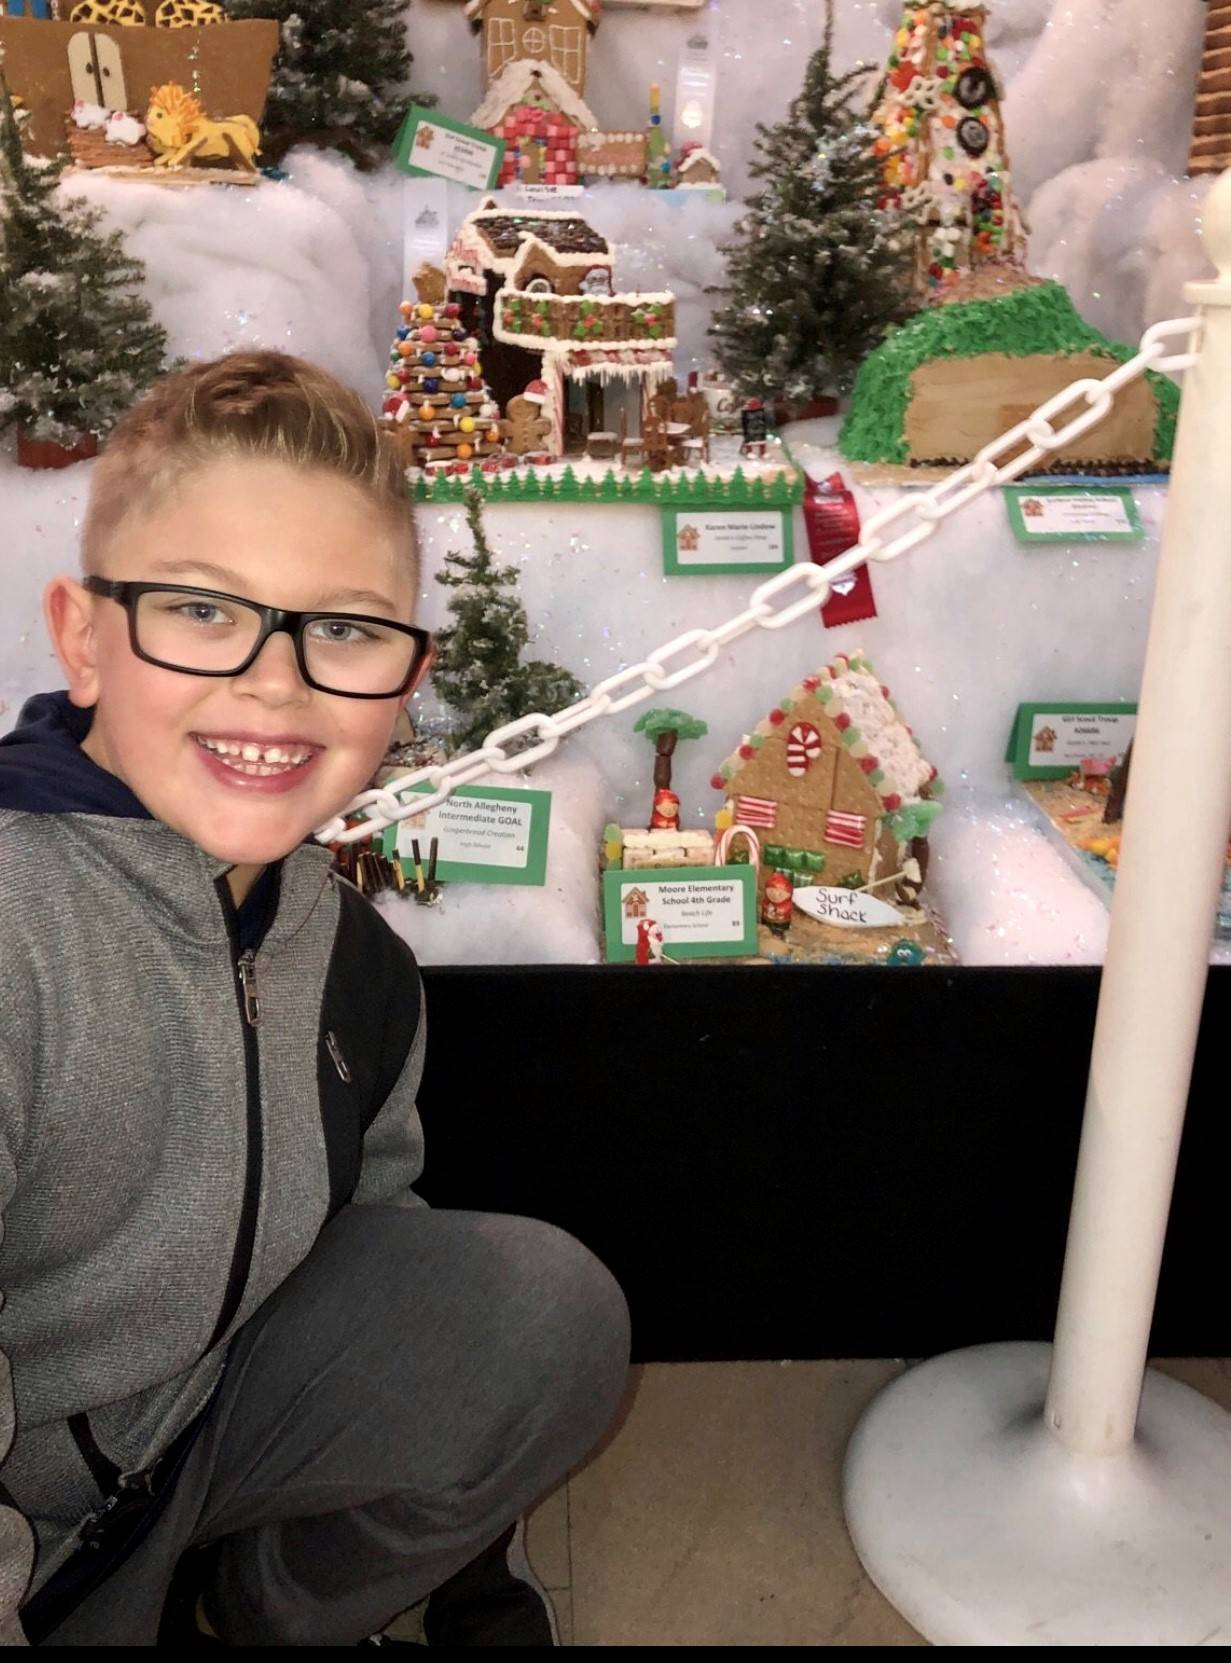 Student in front of gingerbread house.